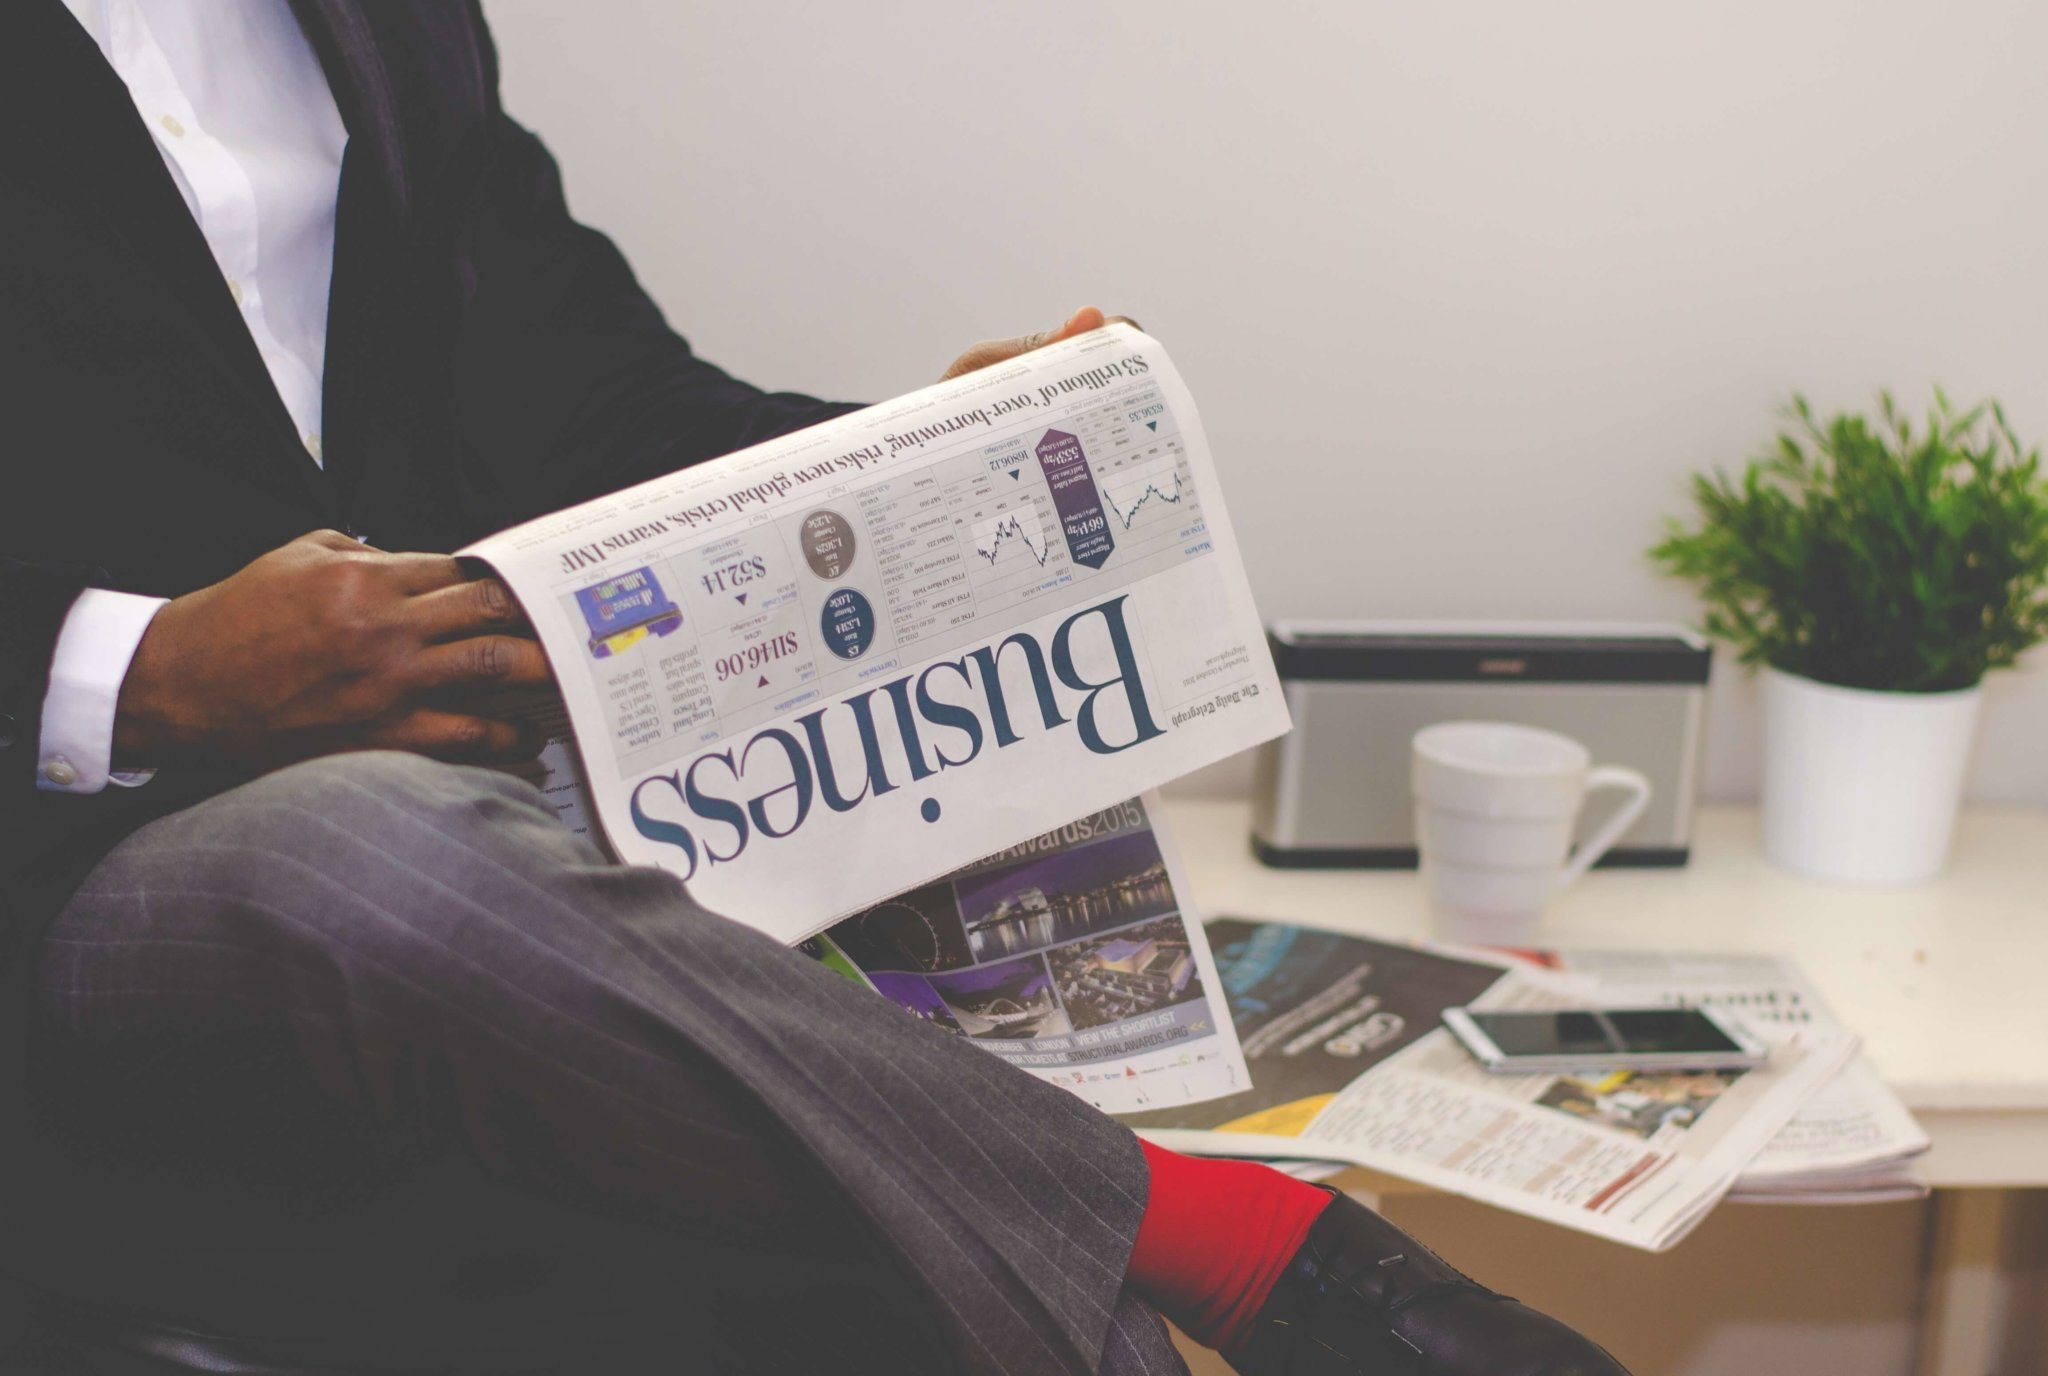 A person reading a business newspaper for successful change management.